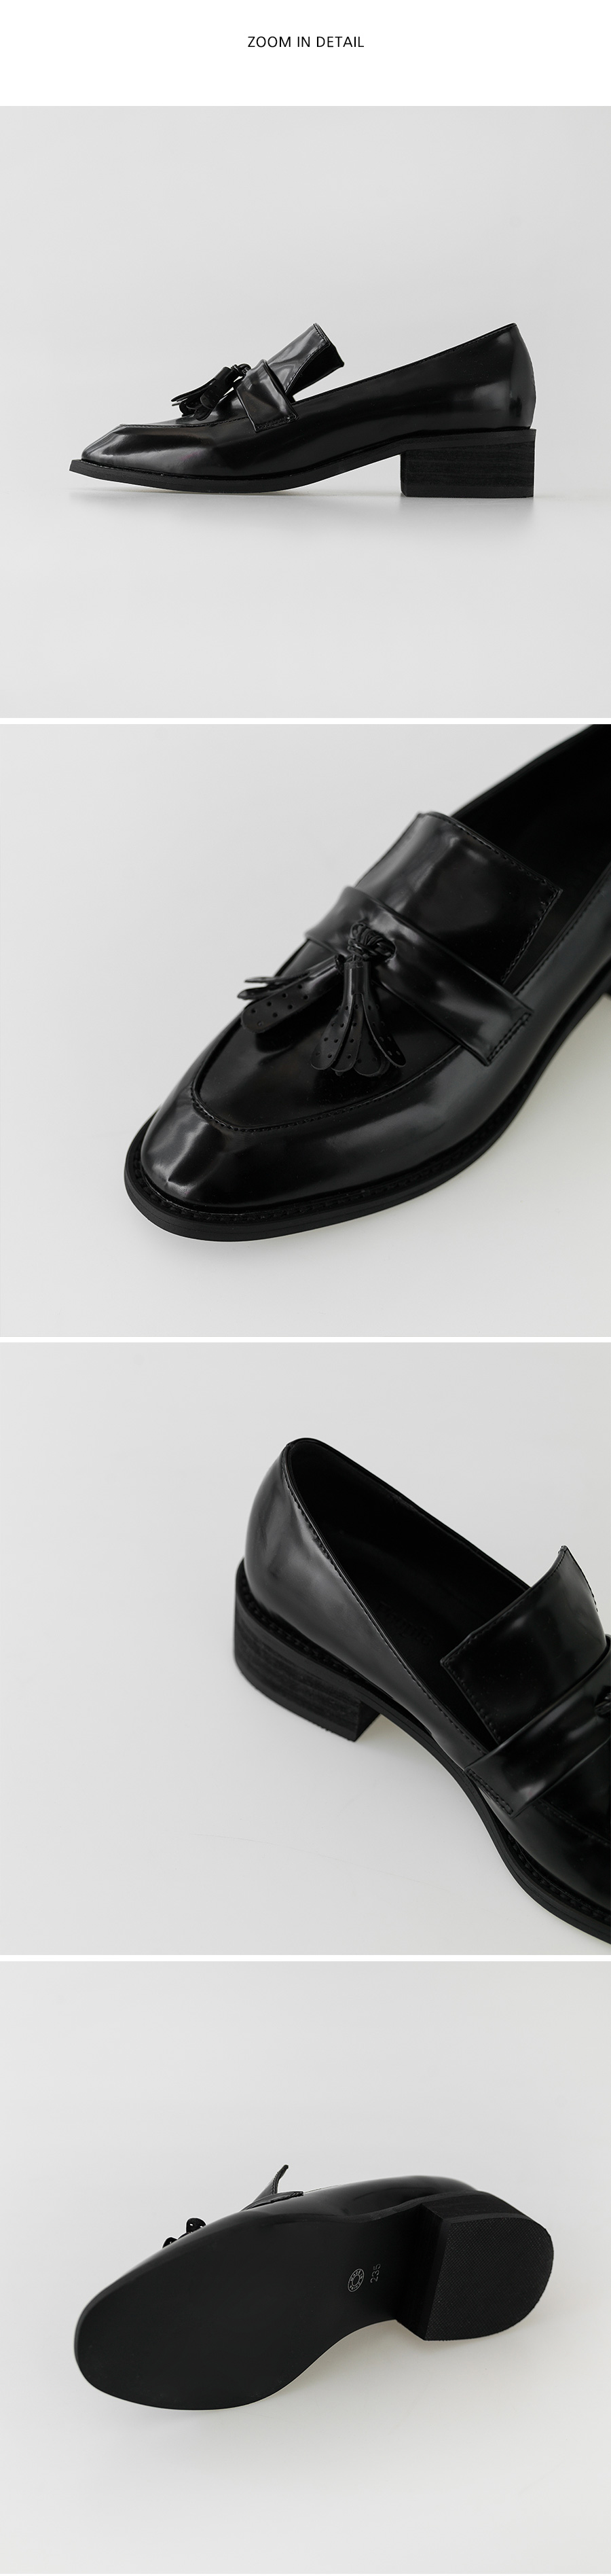 normal tassel loafer